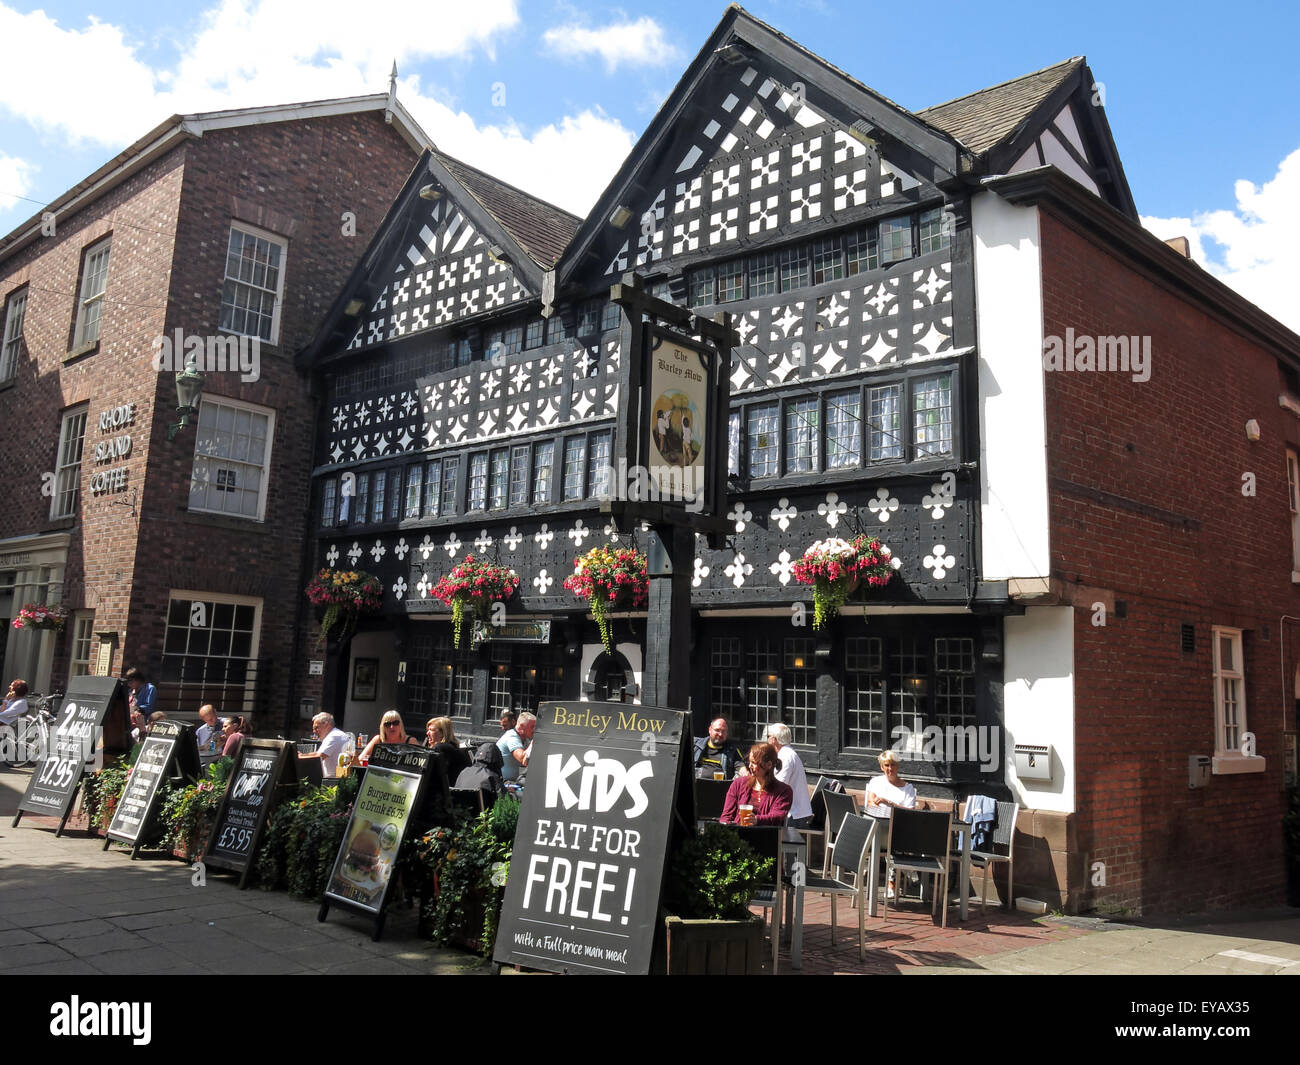 oldest,bar,united,kingdom,GB,Great Britain,history,historic,pint,beer,bitter,drink,drinkers,with,Square,Marketplace,Timber,Framed,Tudor,Cheshire,England,UK,listed,building,I,Grade1,one,timber-framed,public,house,black,white,quatrefoils,red,sandstone,plinth,jettied,gable,Golden Square,Grade One,GoTonySmith,tavern,pubsign,sign,BarleyMow,WA1,WBC,Borough,Council,wood,wooden,Landscape,Buy Pictures of,Buy Images Of,Market Place,Kids eat Free,Barley,Mow,Public,House,Grade2 Listed